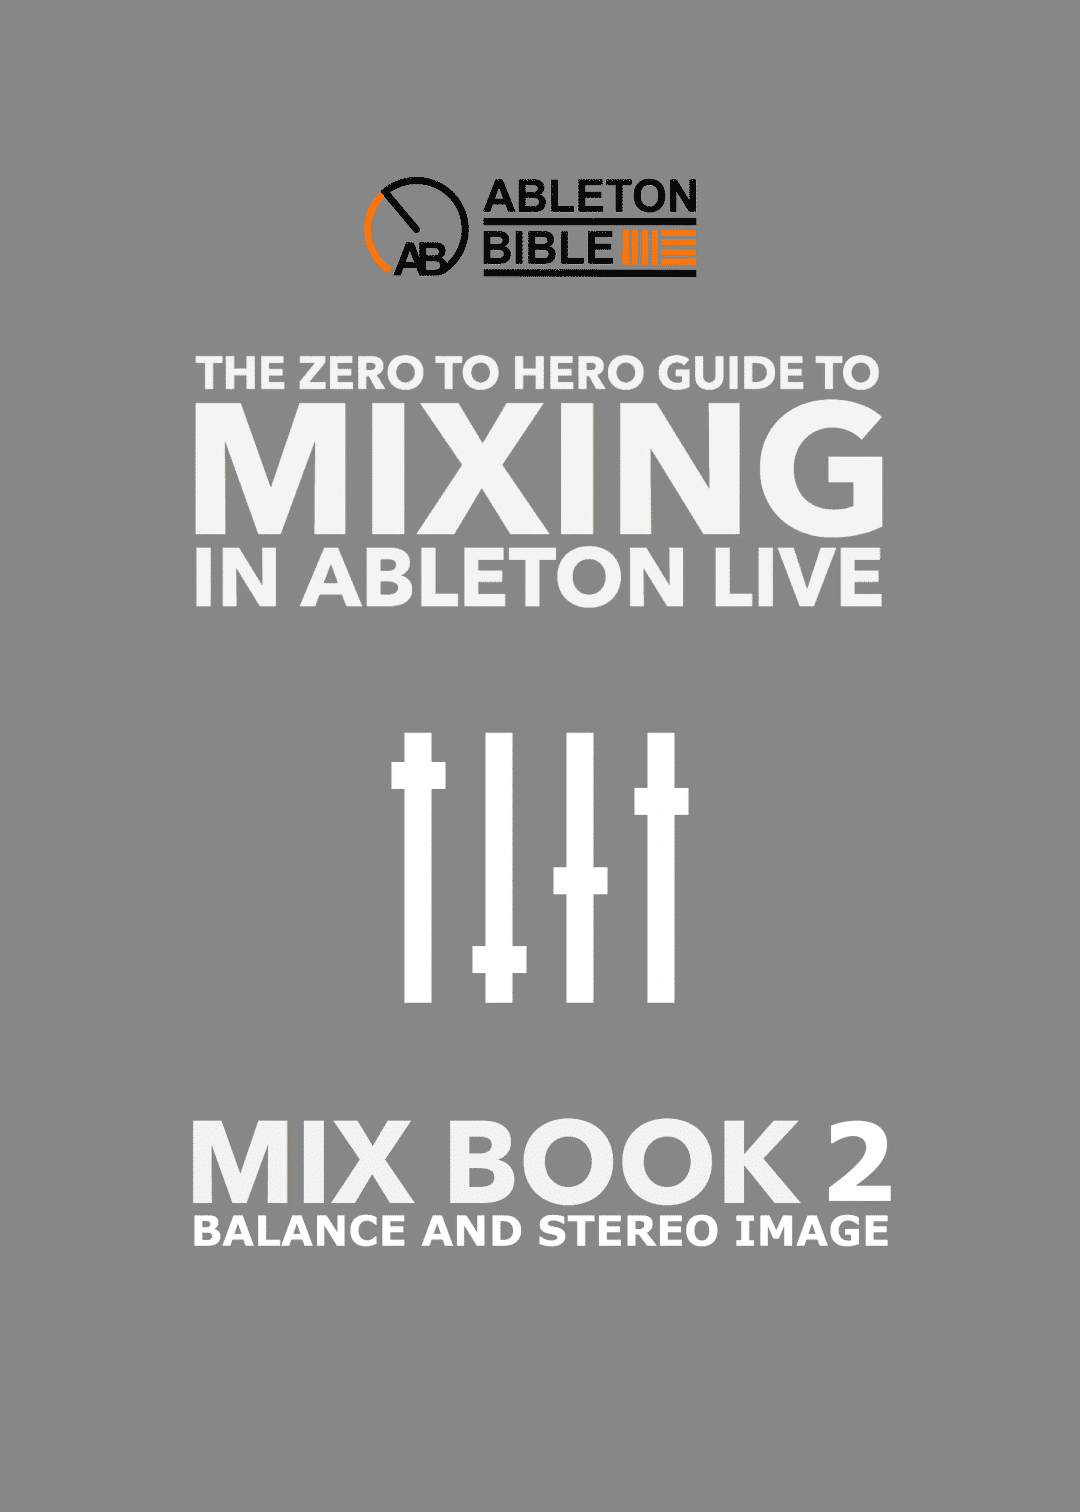 Ableton mixing ebook series balance and stereo imaging studio ableton mixing ebook series balance and stereo imaging fandeluxe Document